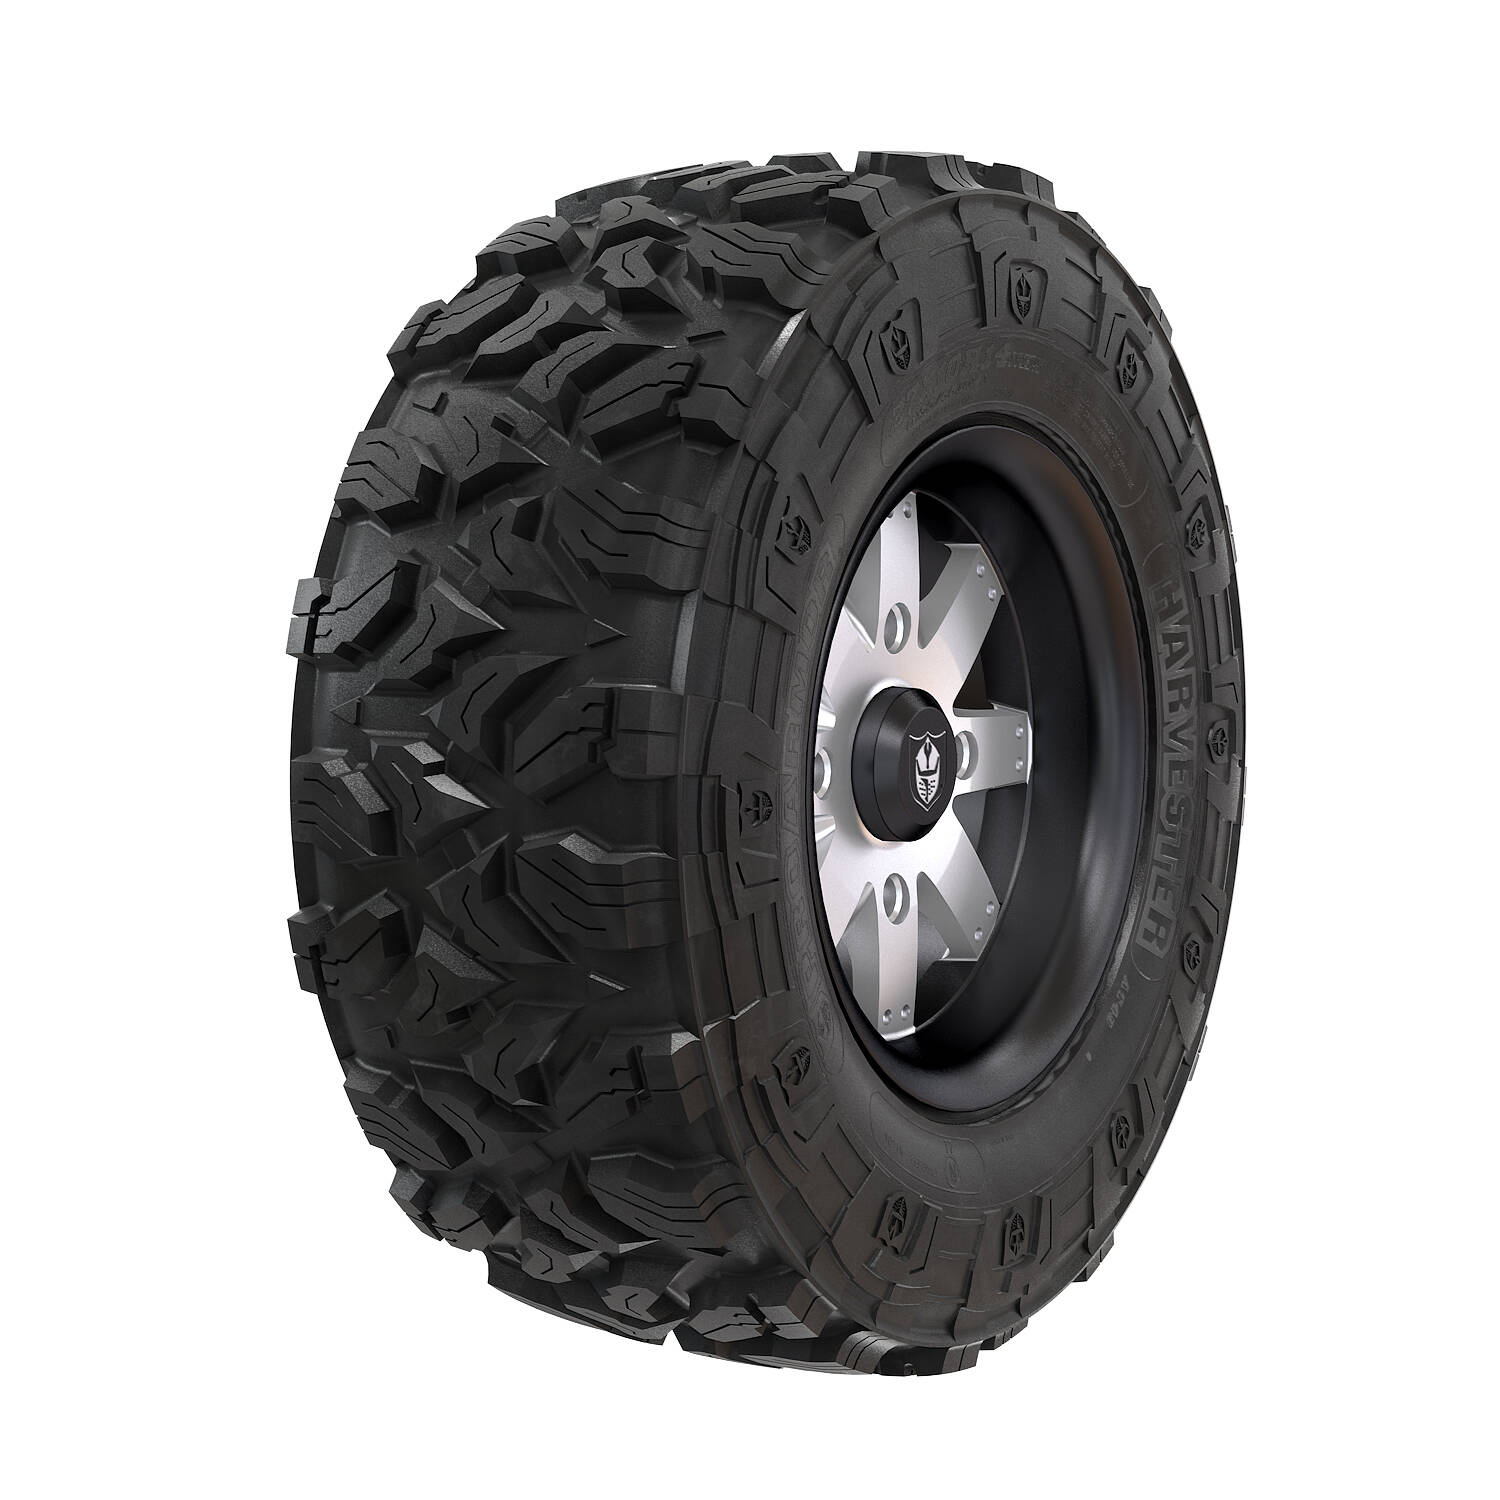 Pro Armor® Wheel & Tire Set: Amplify & Harvester®, Accent, 28R15